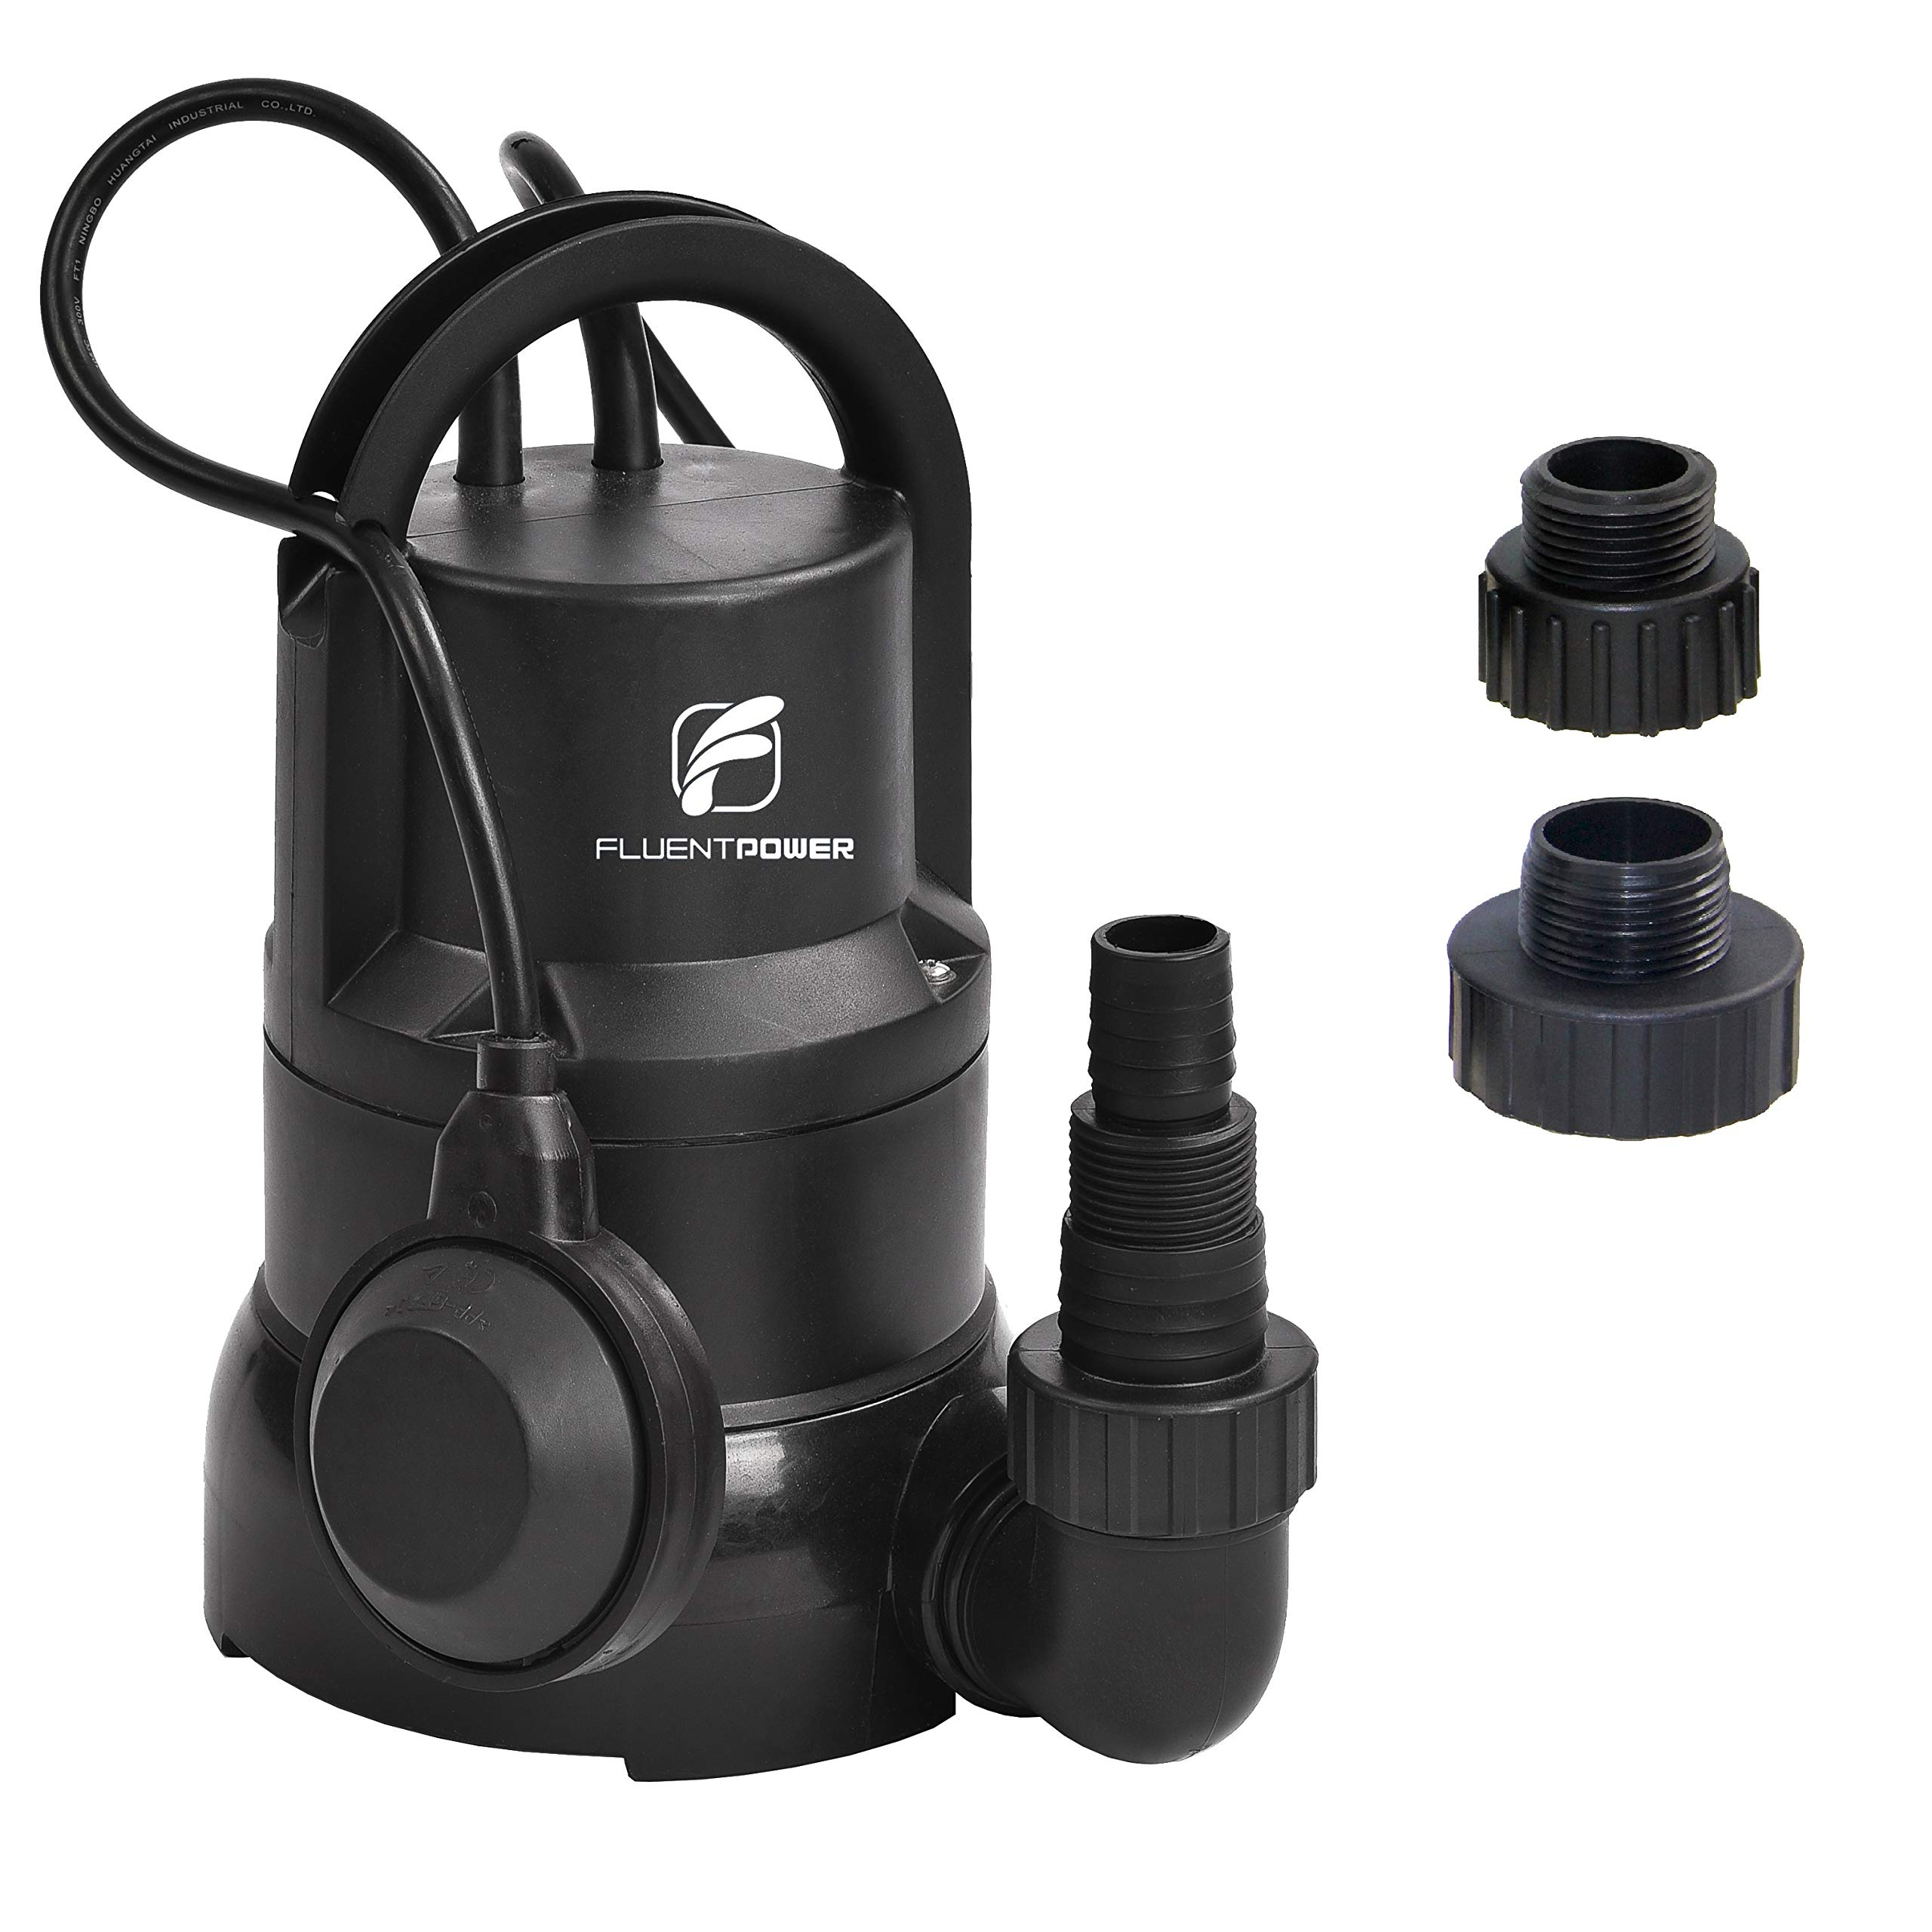 """FLUENTPOWER 1/3 HP Electric Submersible Small Utility Drain Water Pump 3/4"""" Garden Hose Connector Included with Side Discharge for Clean Water"""